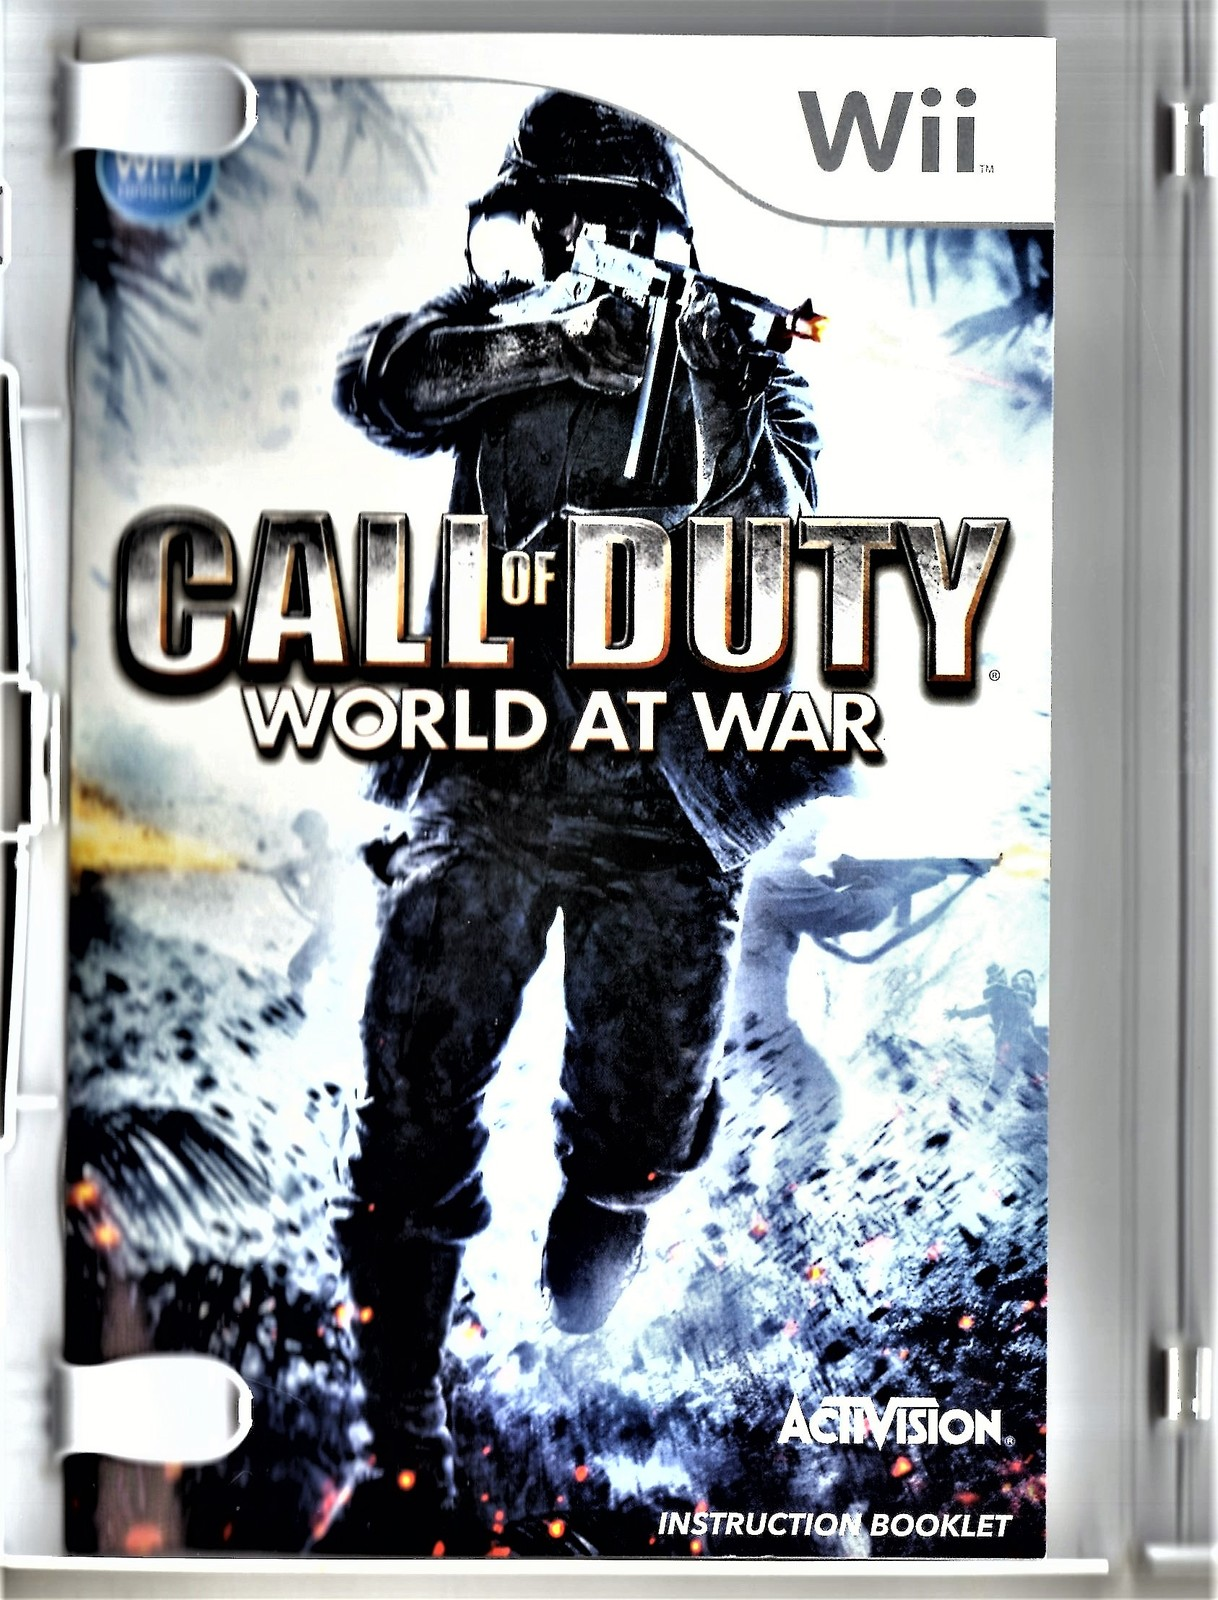 Wii - Call Of Duty World At War image 4